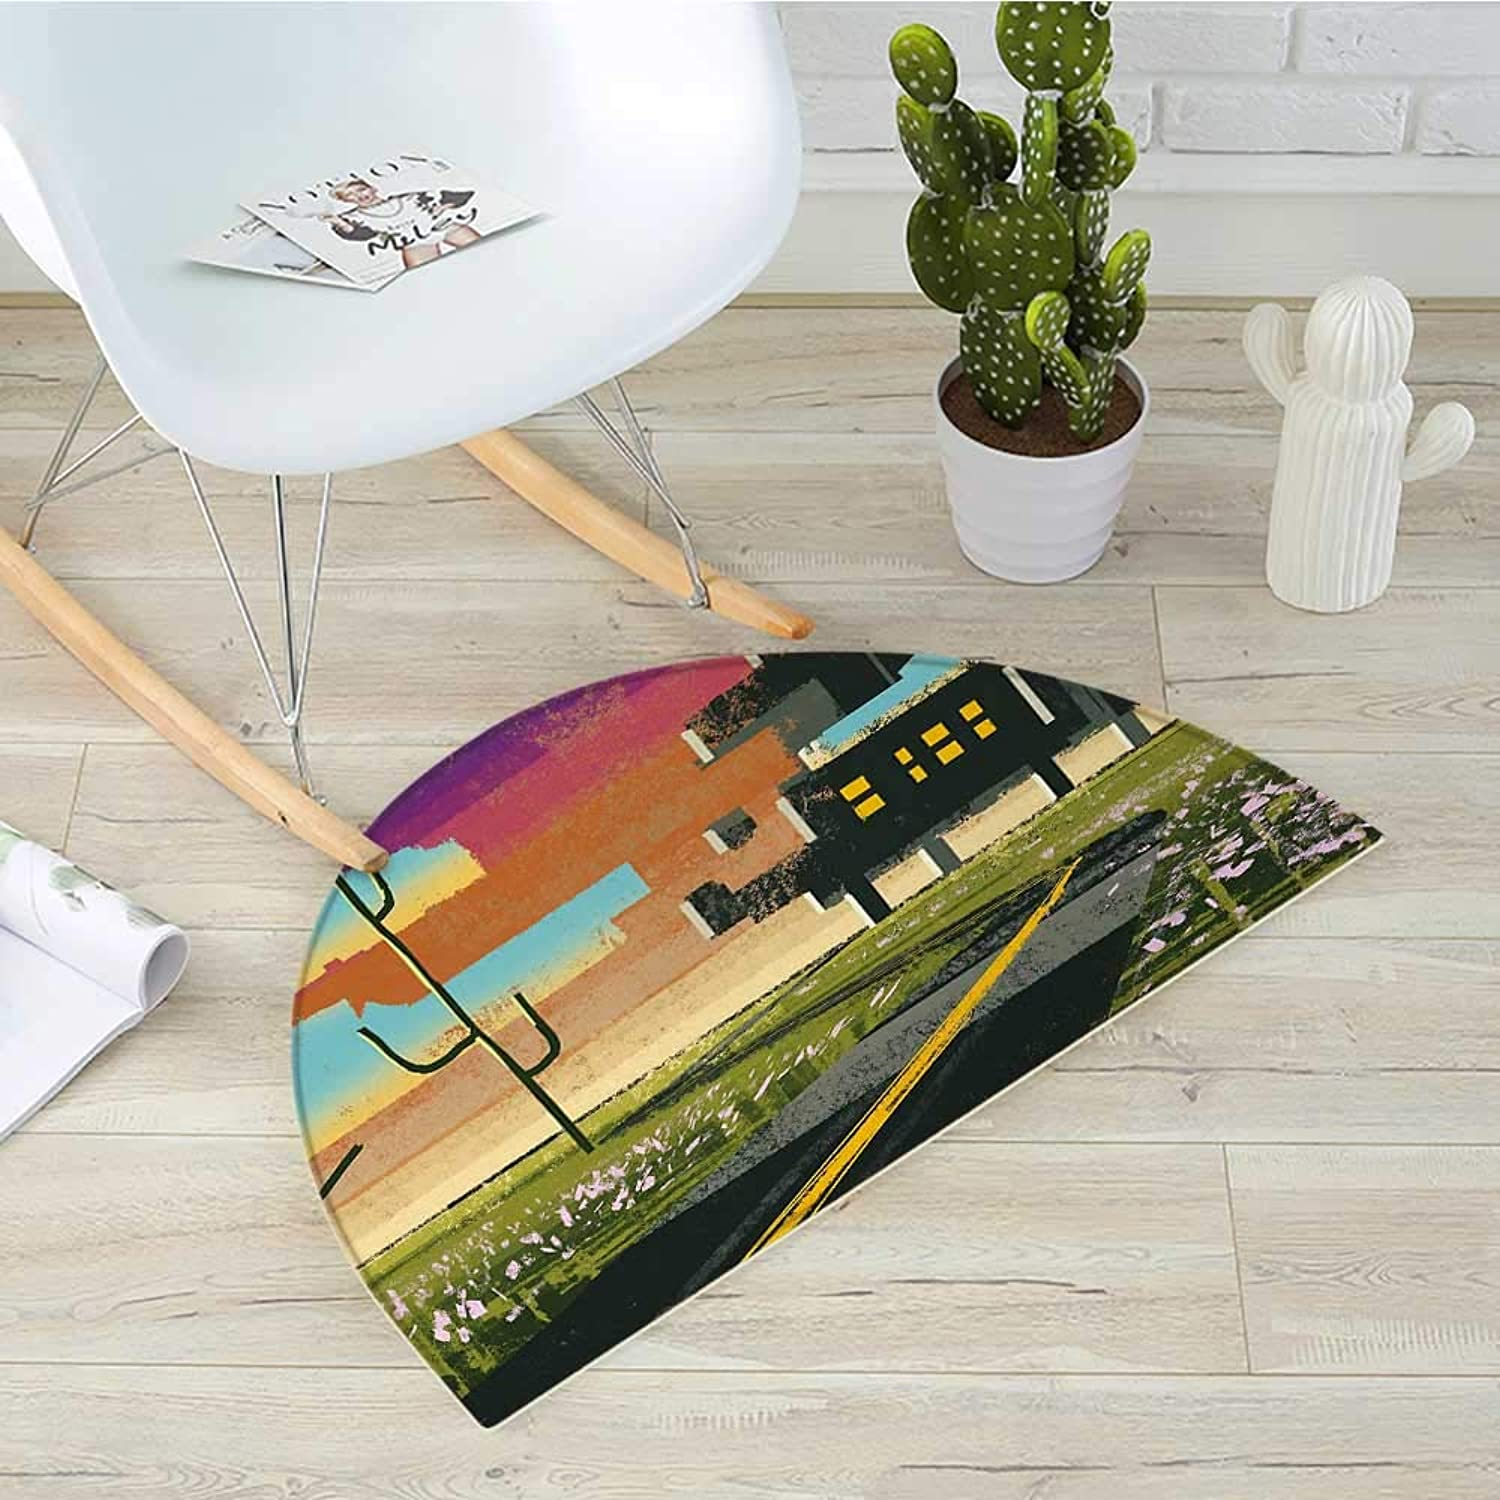 Fantasy Semicircle Doormat Trippy Futuristic Landscape Collage in Paint Effect Apartment in Clouds Design Halfmoon doormats H 39.3  xD 59  Multicolor